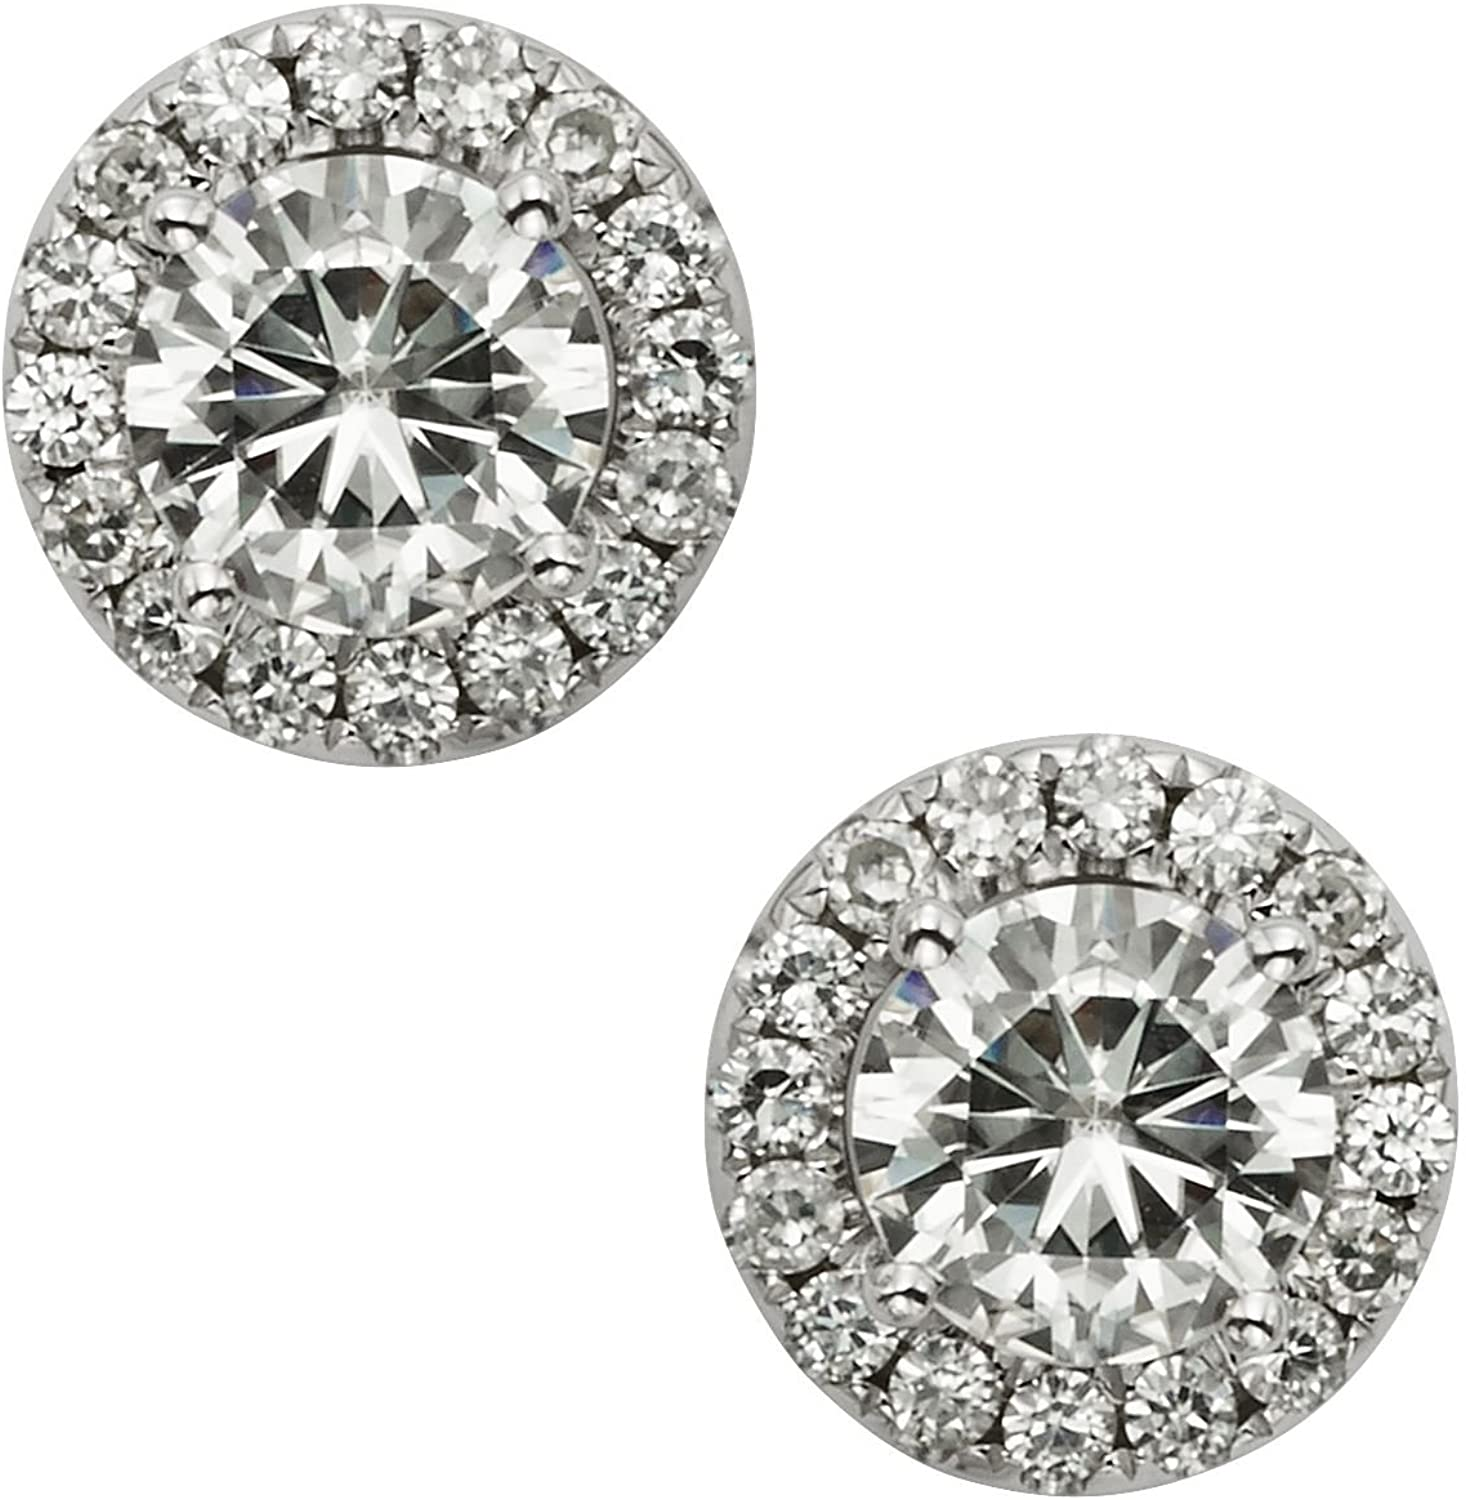 14K White Gold Moissanite by Charles & Colvard 5.5mm Round Halo Stud Earrings, 1.52cttw DEW